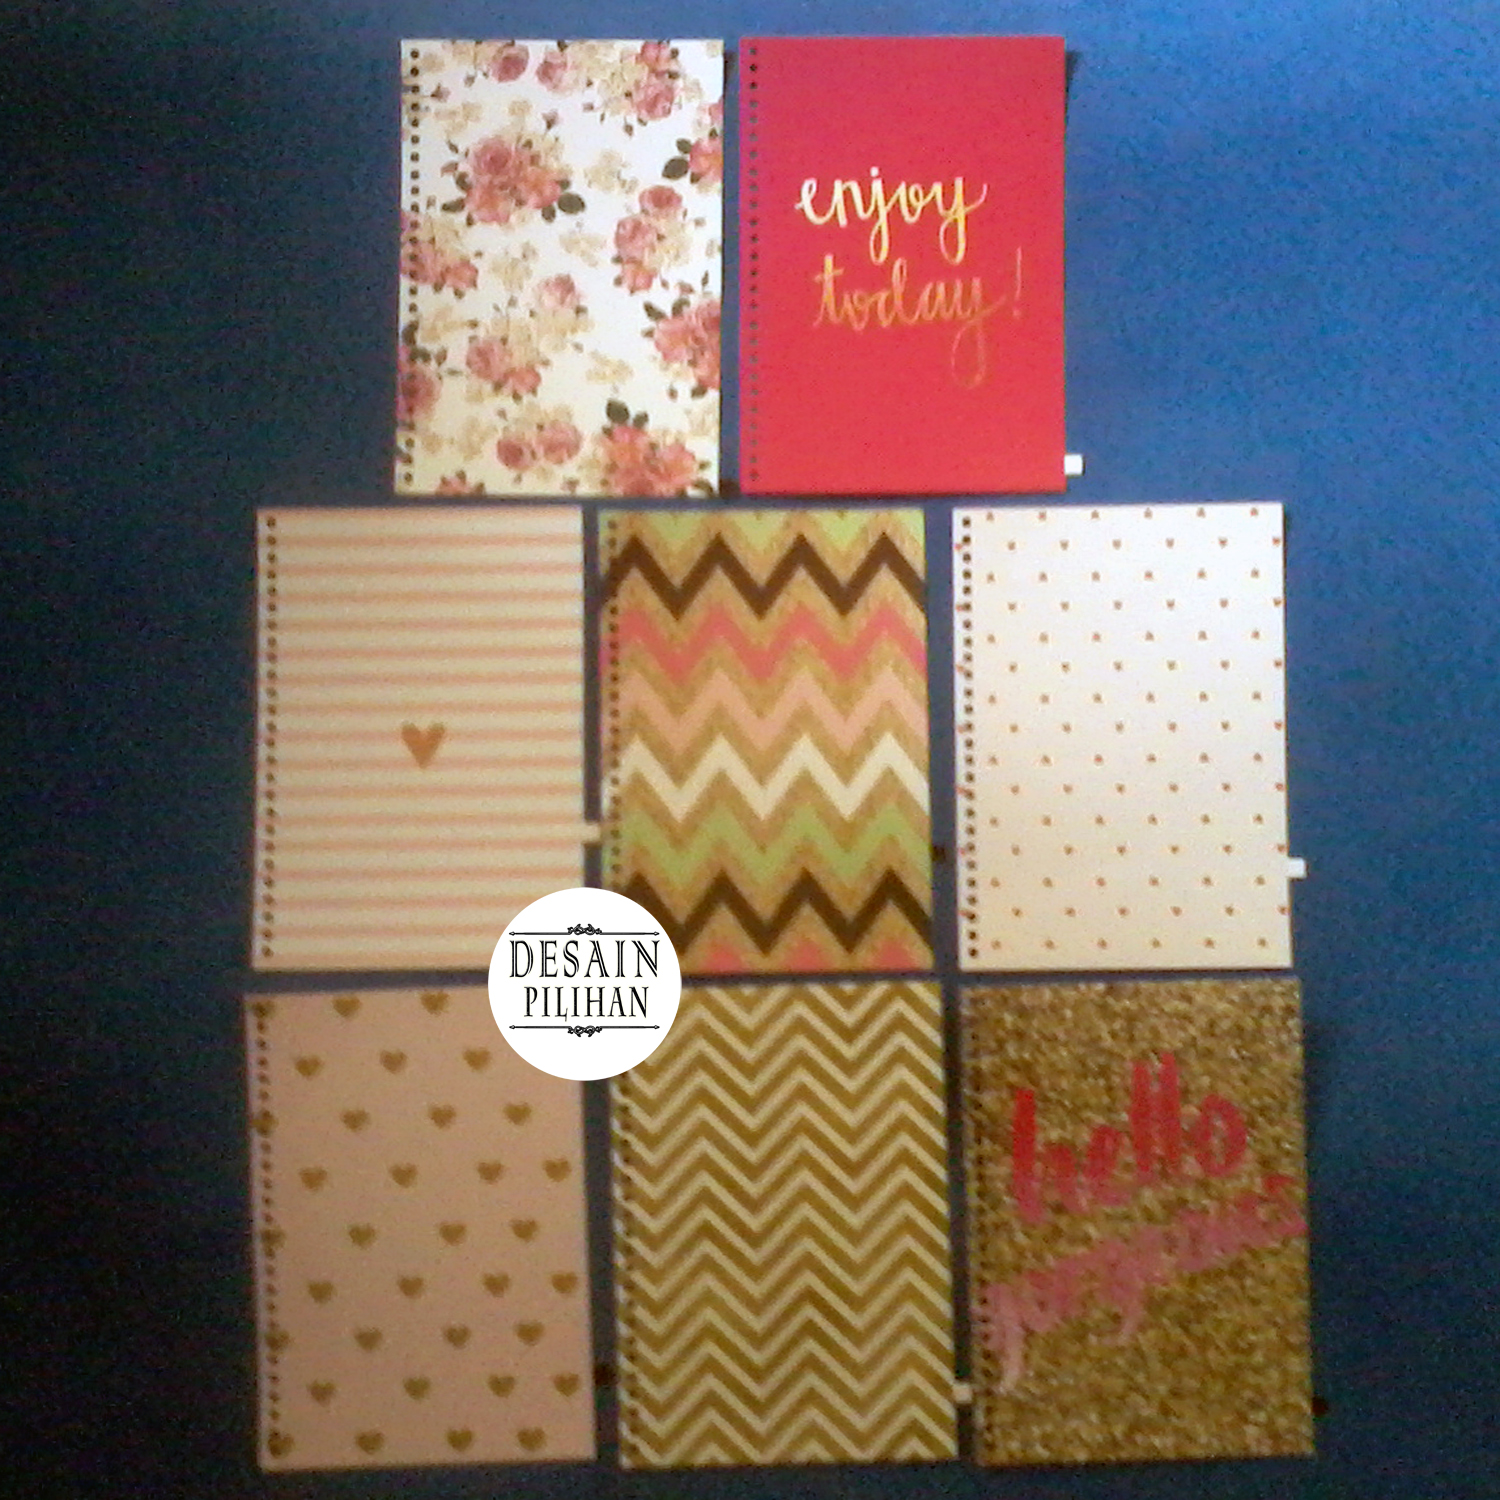 PEMBATAS BINDER TRIBAL, QUOTE, PINKY